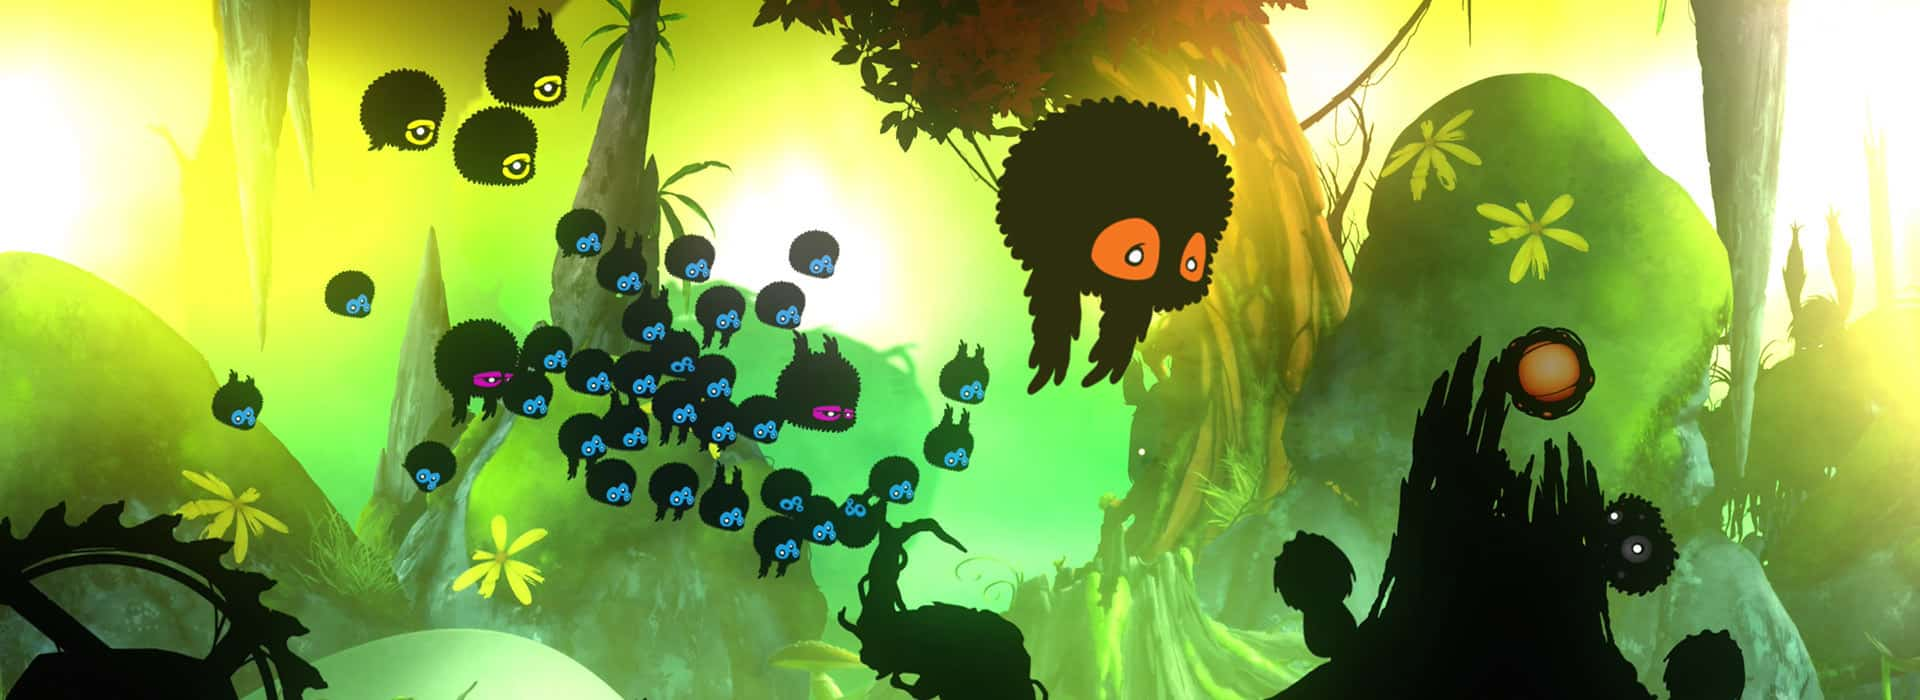 badland-game-of-the-year-edition-banner